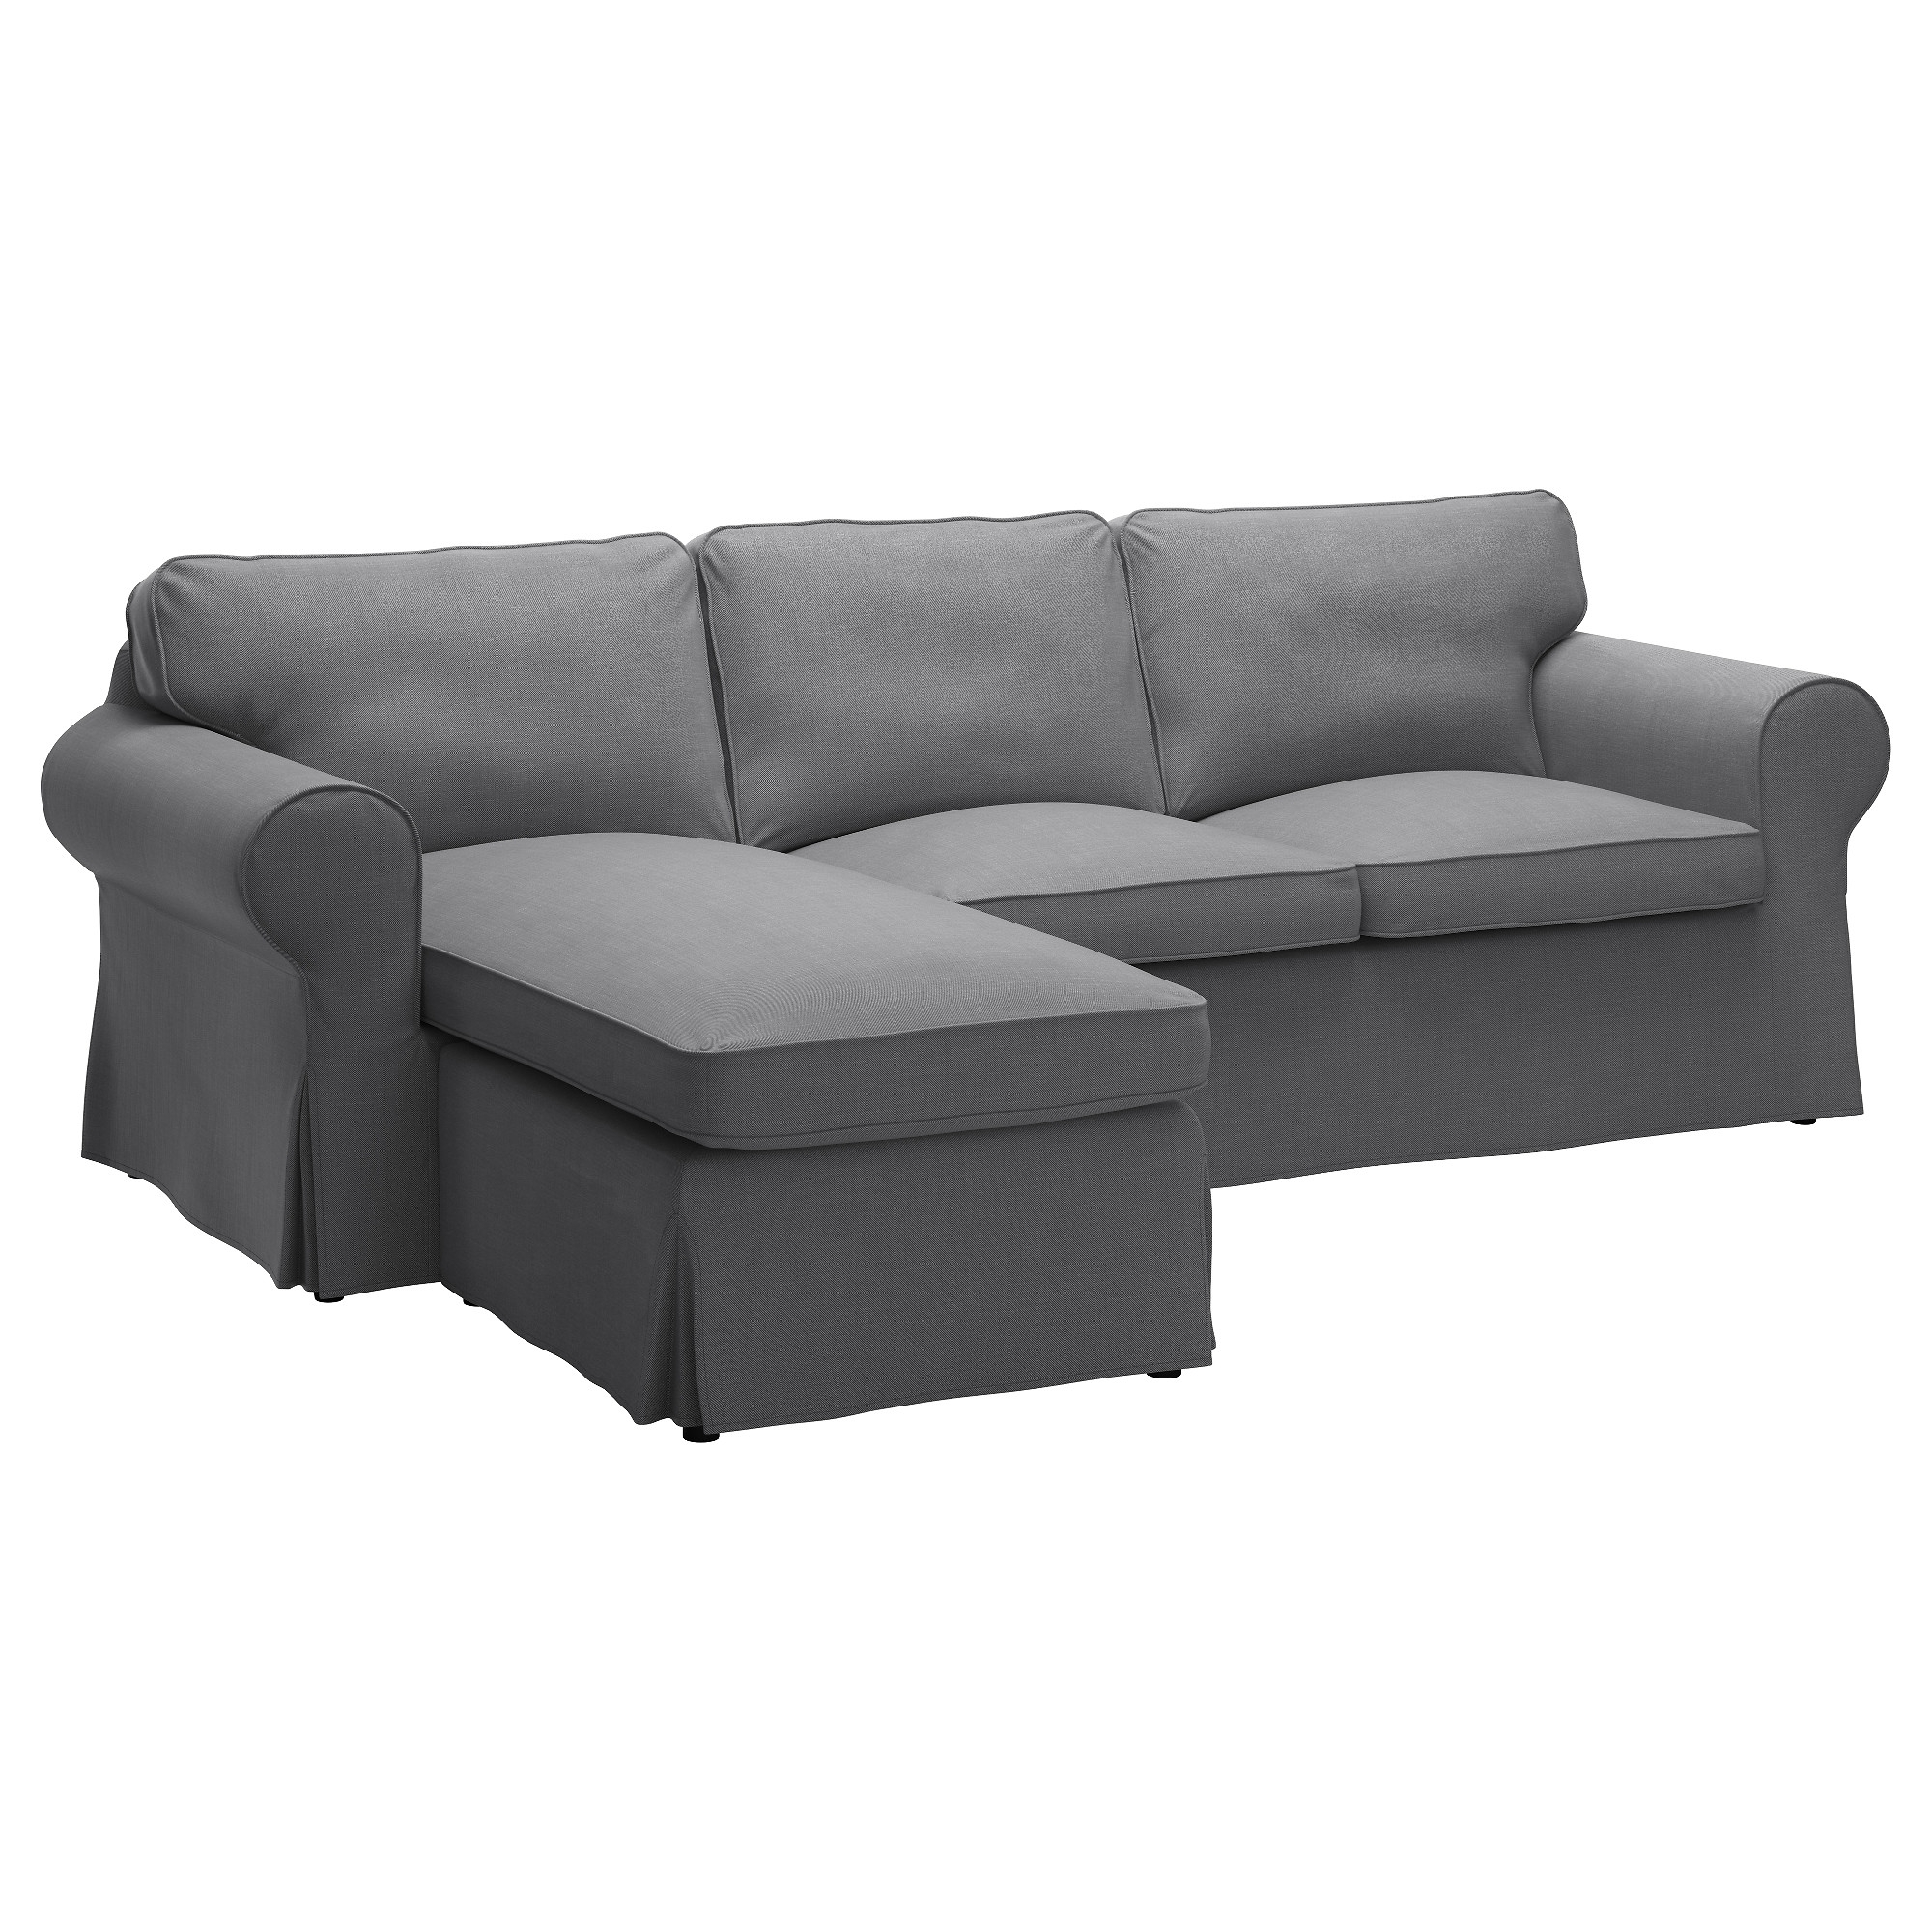 Ektorp Cover For Sofa – With Chaise/lofallet Beige – Ikea Intended For 2018 Sofas With Chaise Lounge (View 5 of 15)